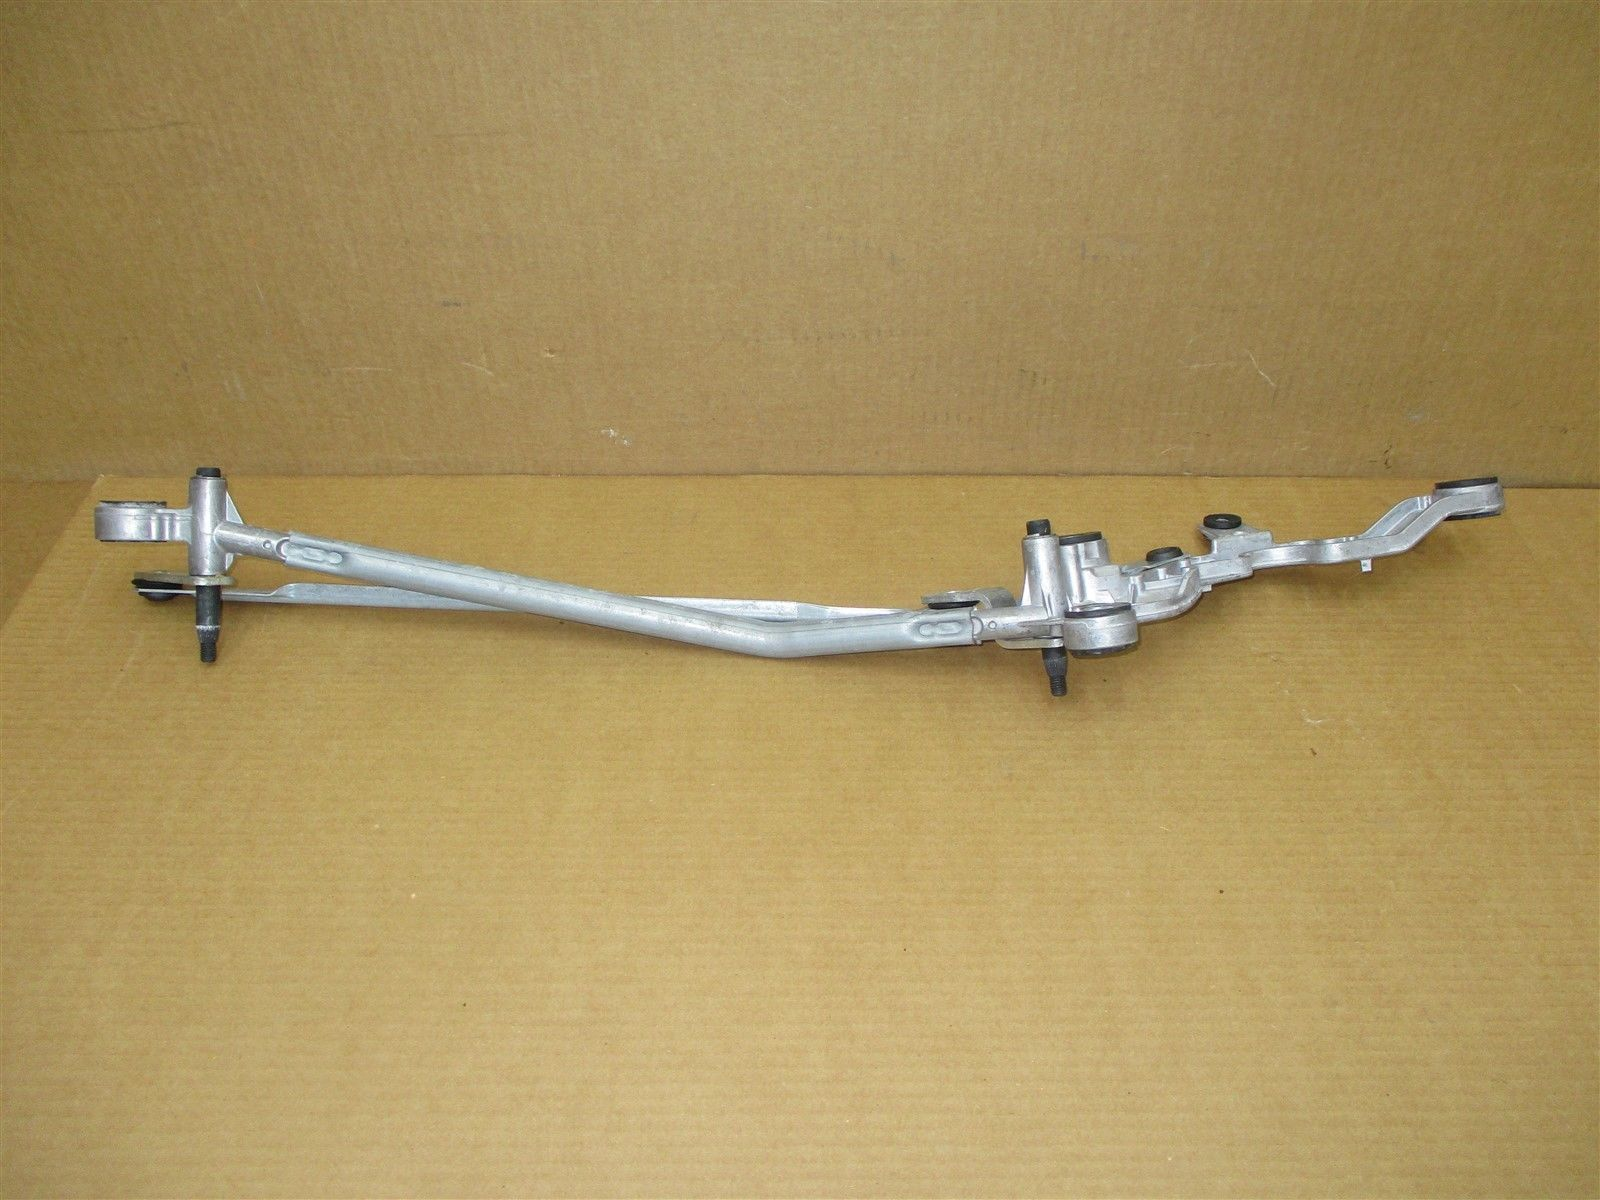 10 Panamera S RWD 970 Porsche WINDSHIELD WIPER ARM ASSEMBLY 97062803501 95,439